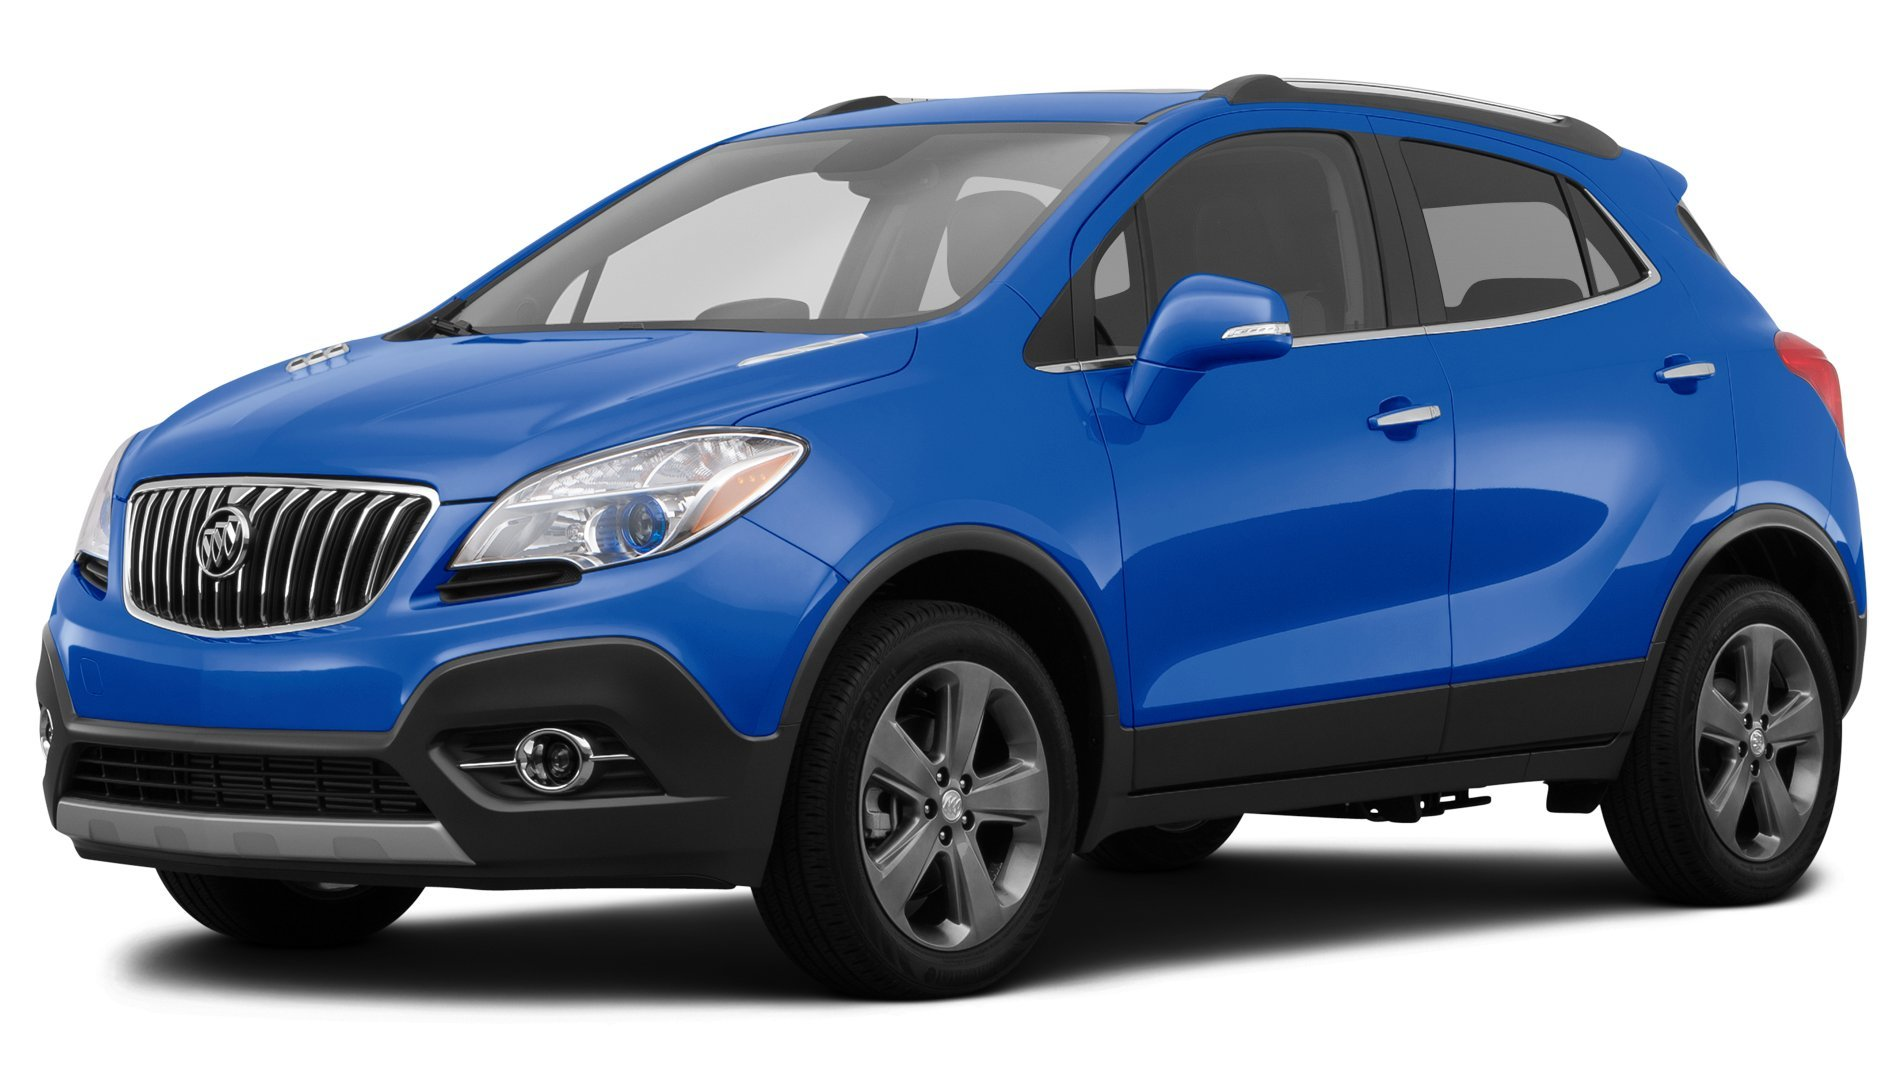 Amazon.com: 2014 Buick Encore Reviews, Images, and Specs: Vehicles